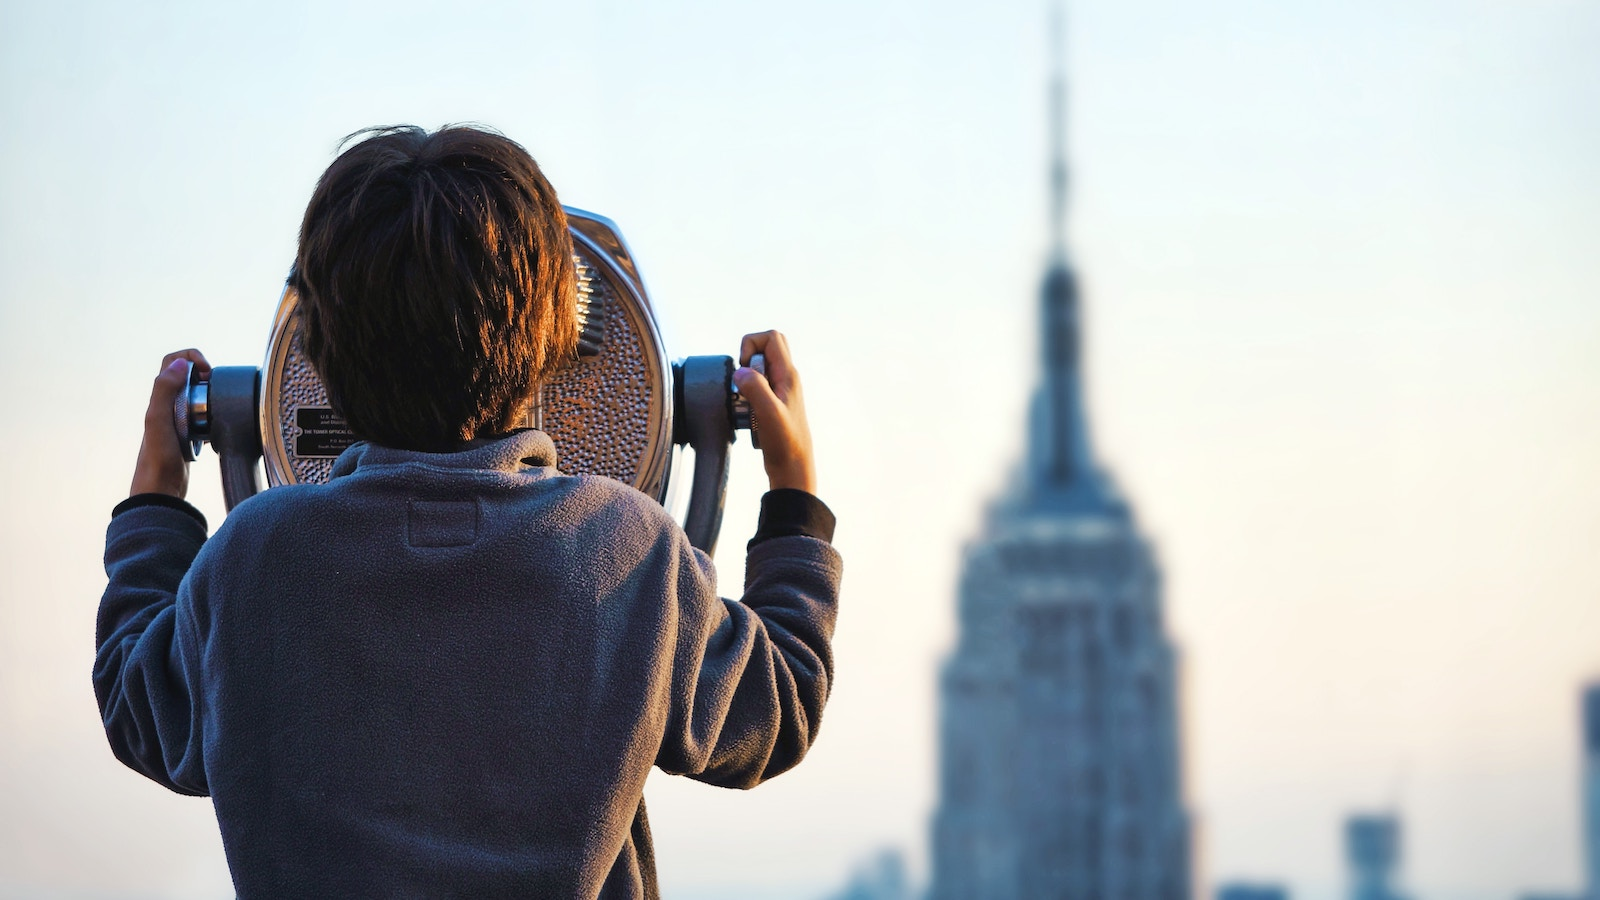 Child looks through binoculars at Empire State Building